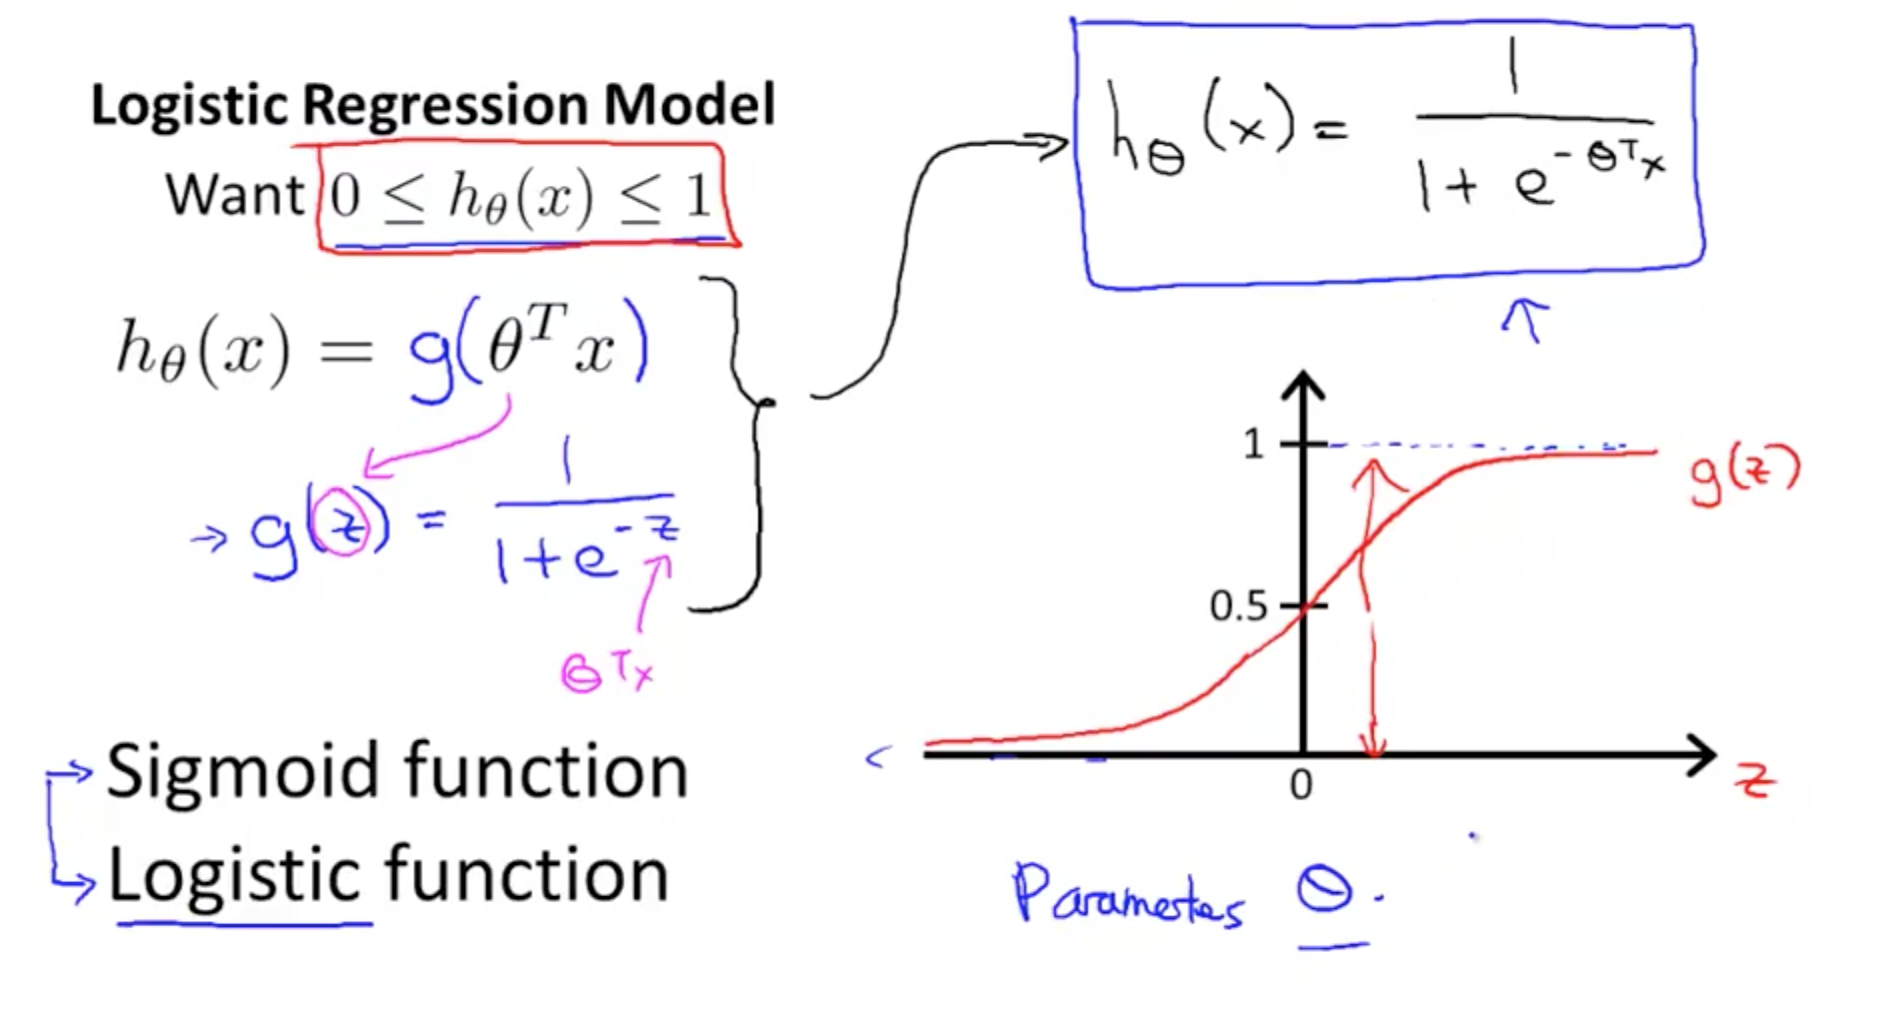 dissertation logistic regression Dissertation logistic regression logistic regression is the appropriate regression analysis to conduct when the dependent variable is dichotomous (binary.